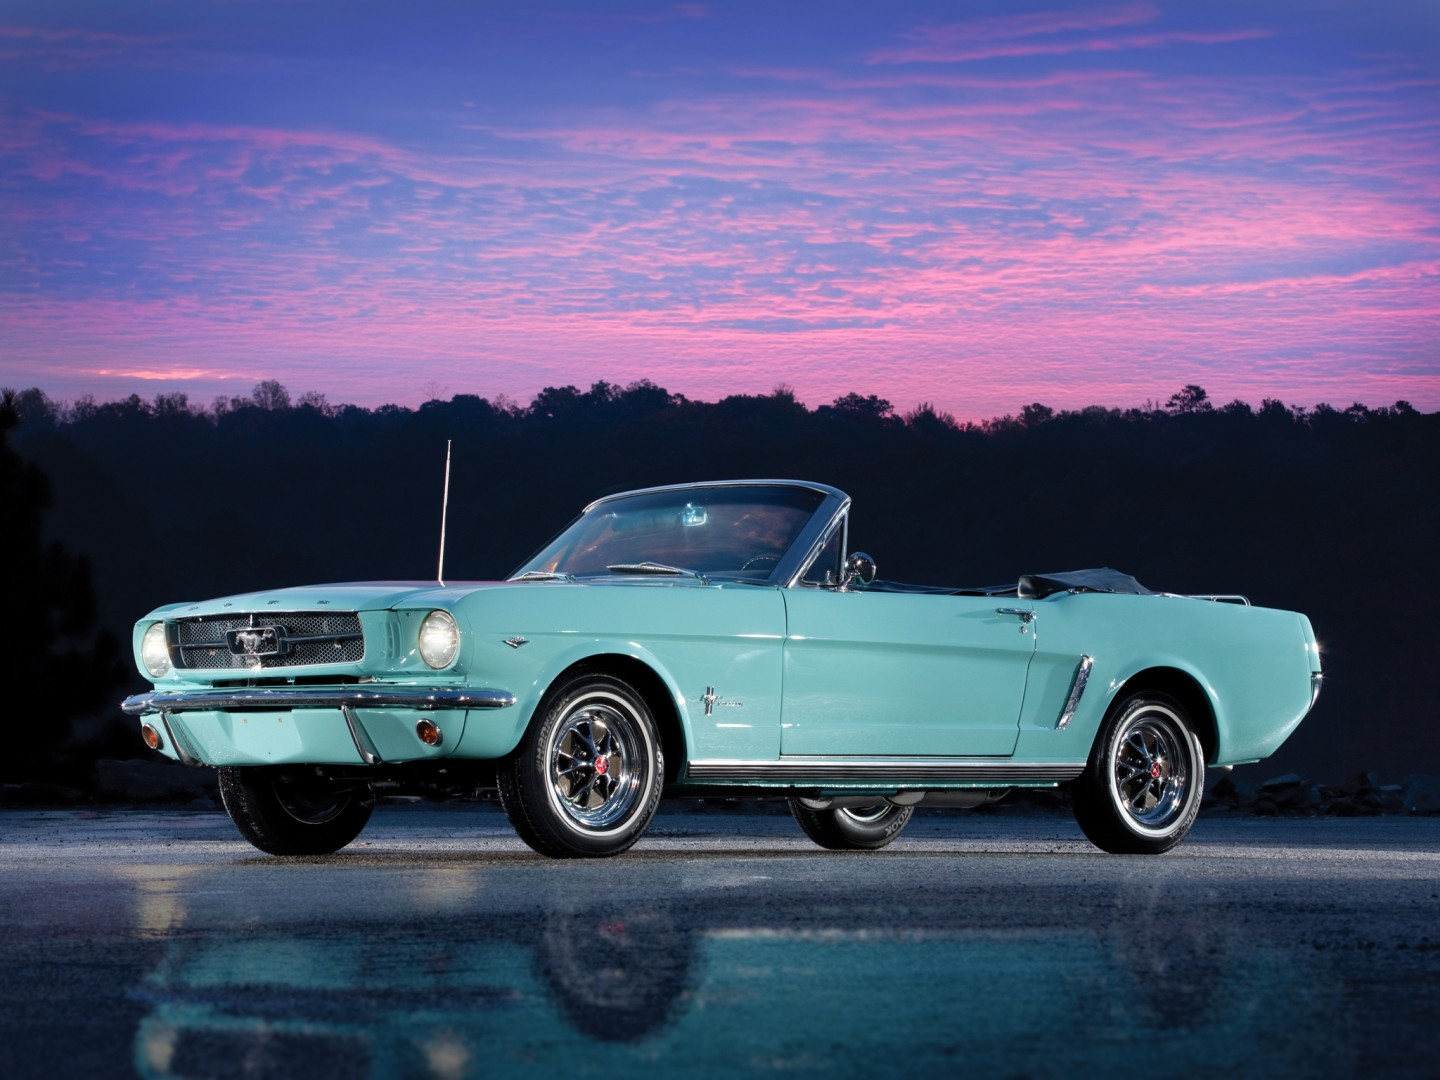 Ford Mustang Convertible (1964)